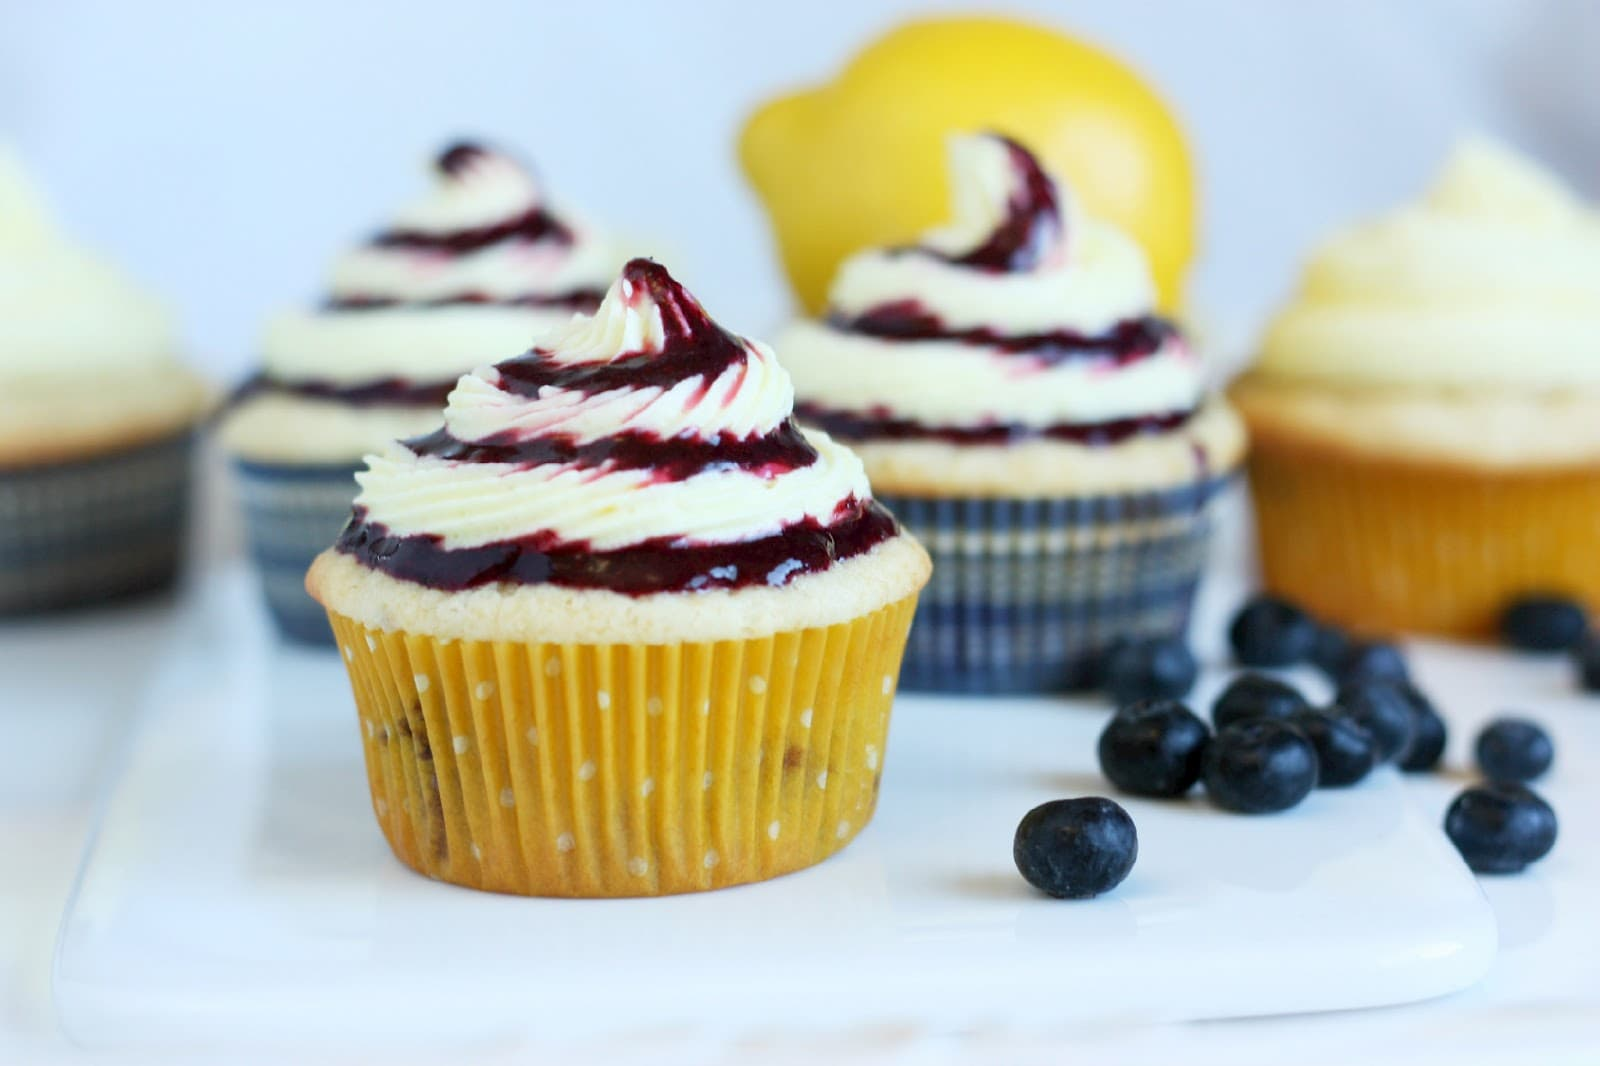 Blueberry Cupcakes with Lemon Buttercream Frosting and Blueberry Sauce ...